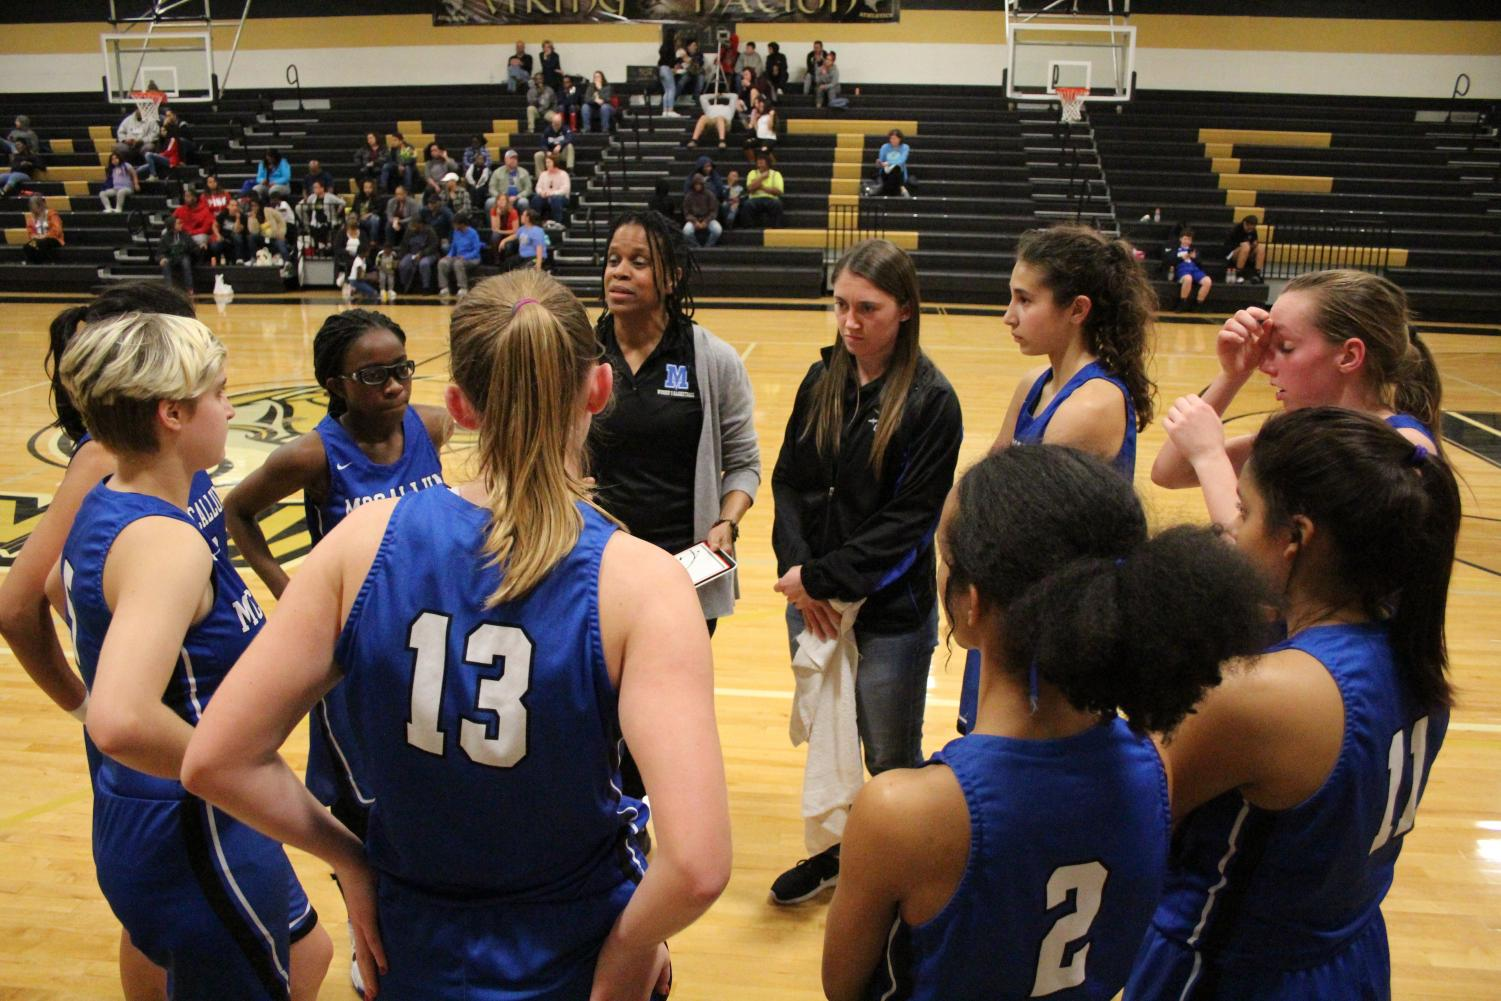 Coach Campbell rallies the troops during a timeout at Lanier, Photo by Selena De Jesus.